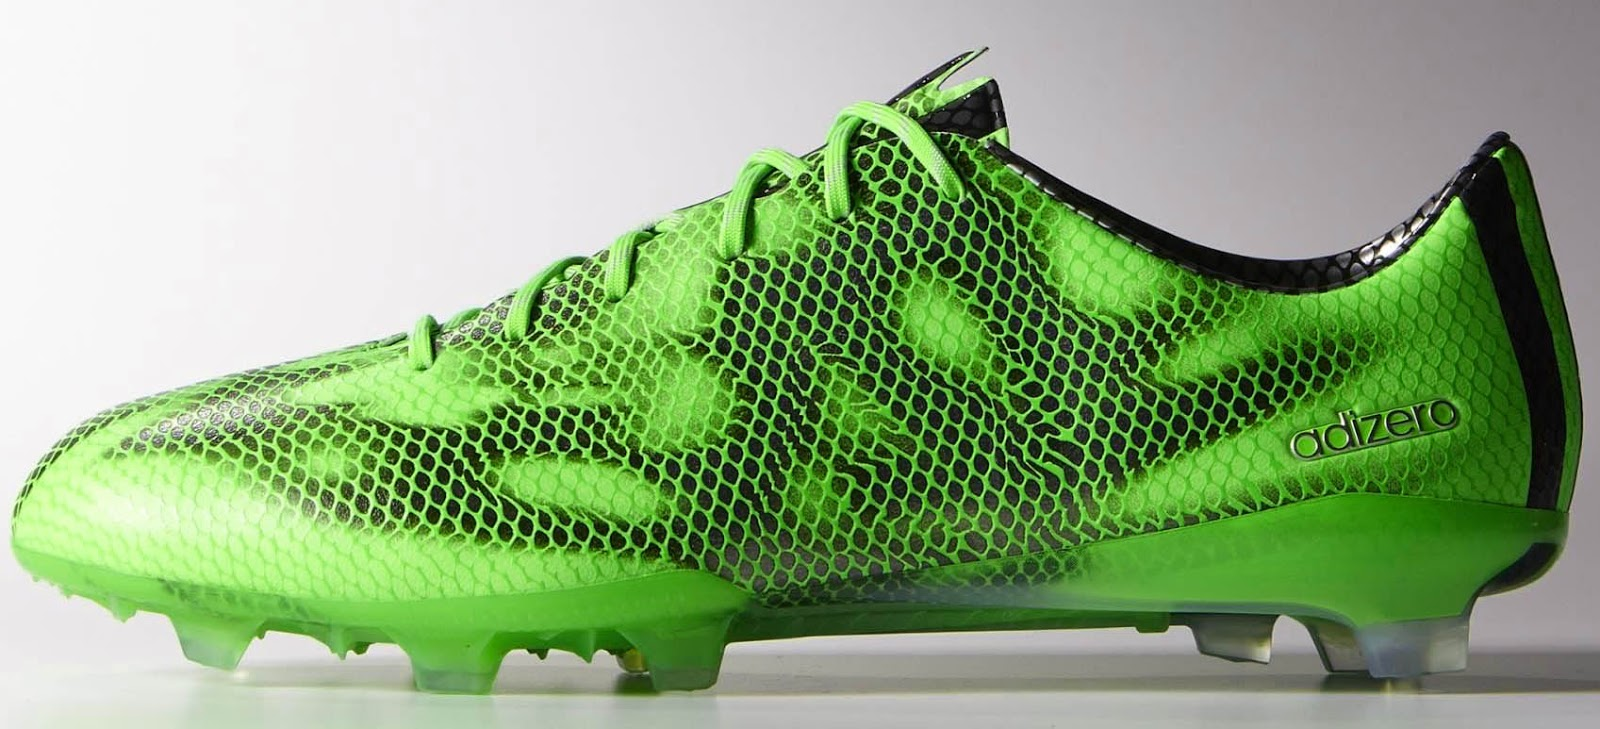 solar green adidas f50 adizero summer 2015 boots released. Black Bedroom Furniture Sets. Home Design Ideas